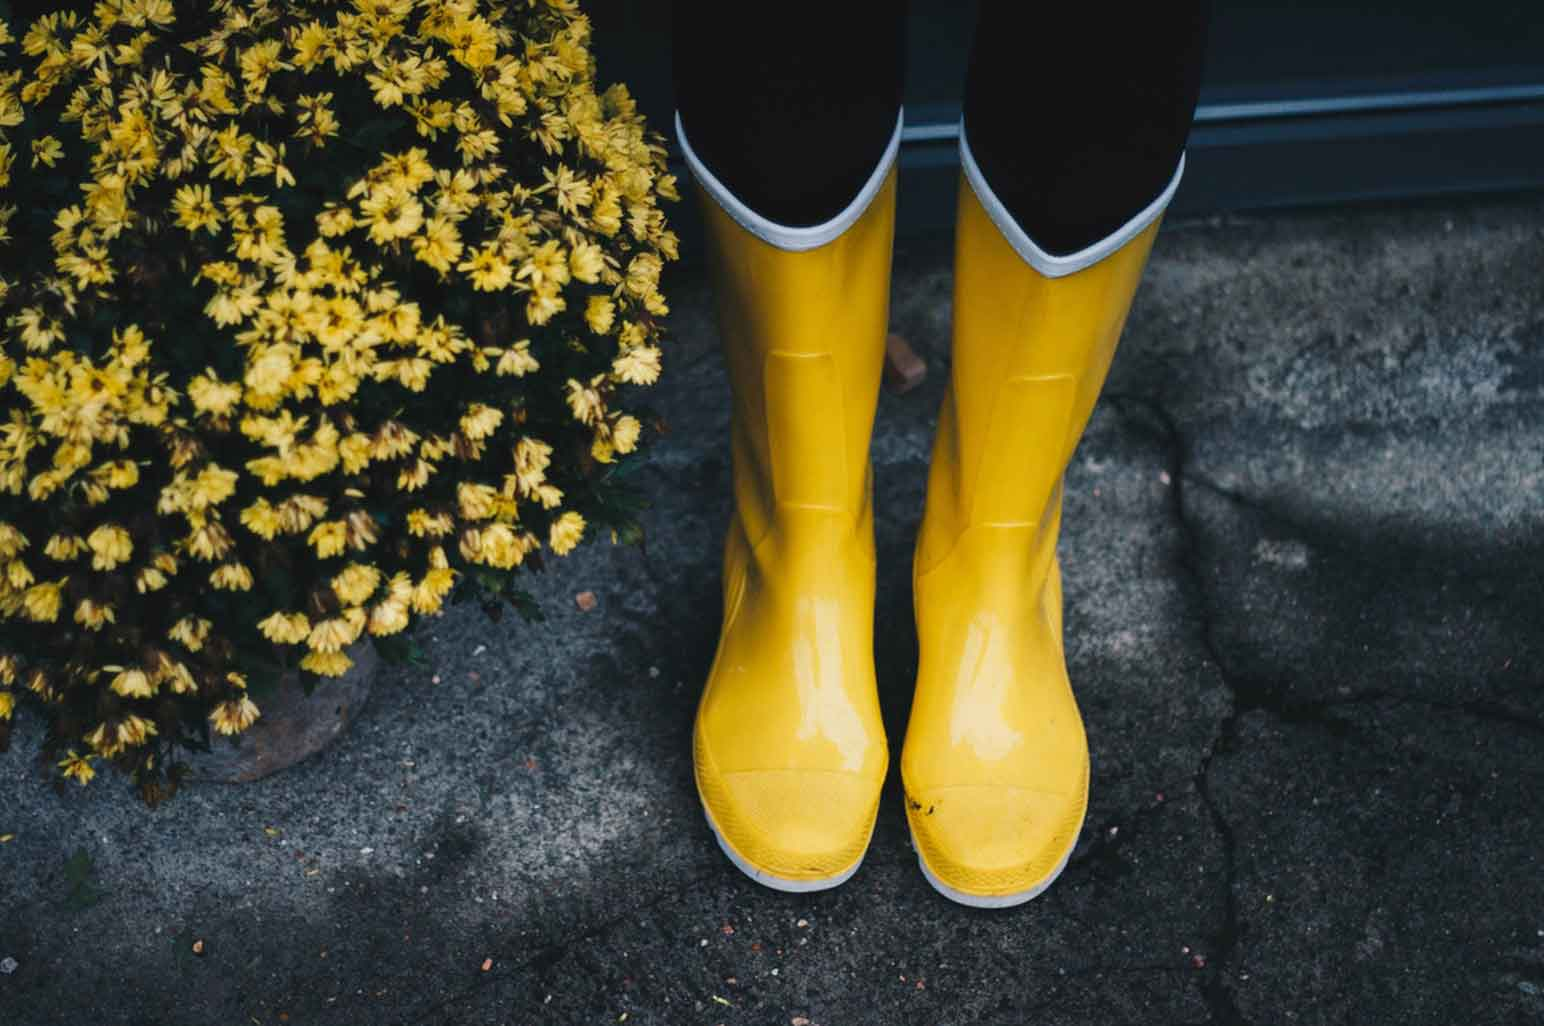 Things to Look for When Buying a Pair of Rain Boots